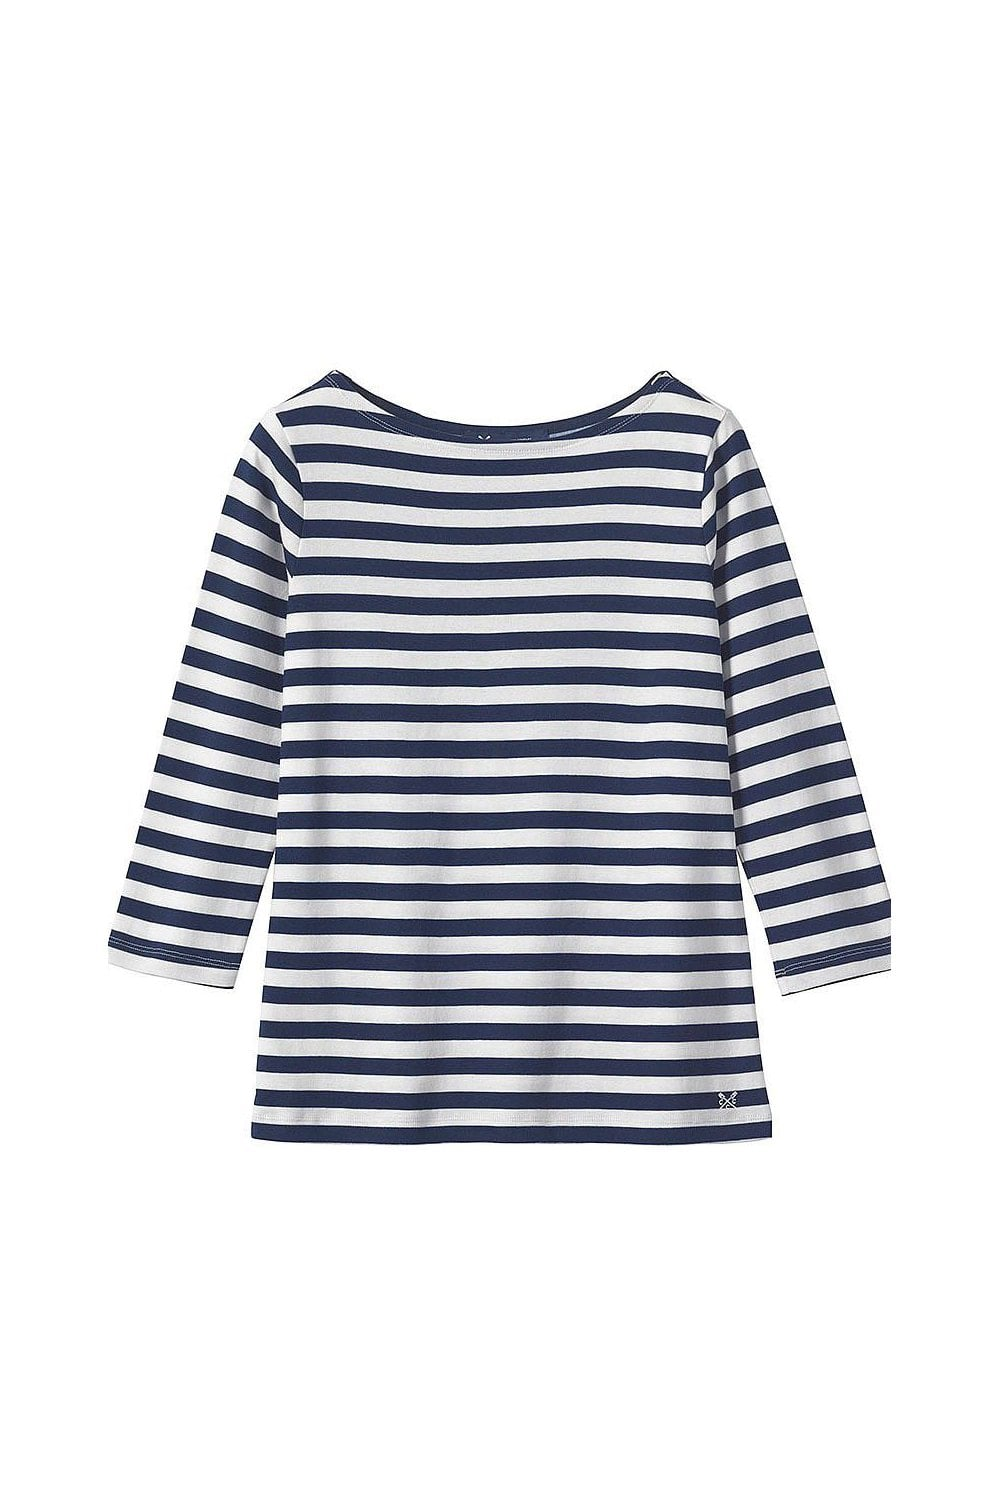 b18de9f13dba Crew Clothing Womens Ultimate Breton Top - Navy/White - Womenswear ...